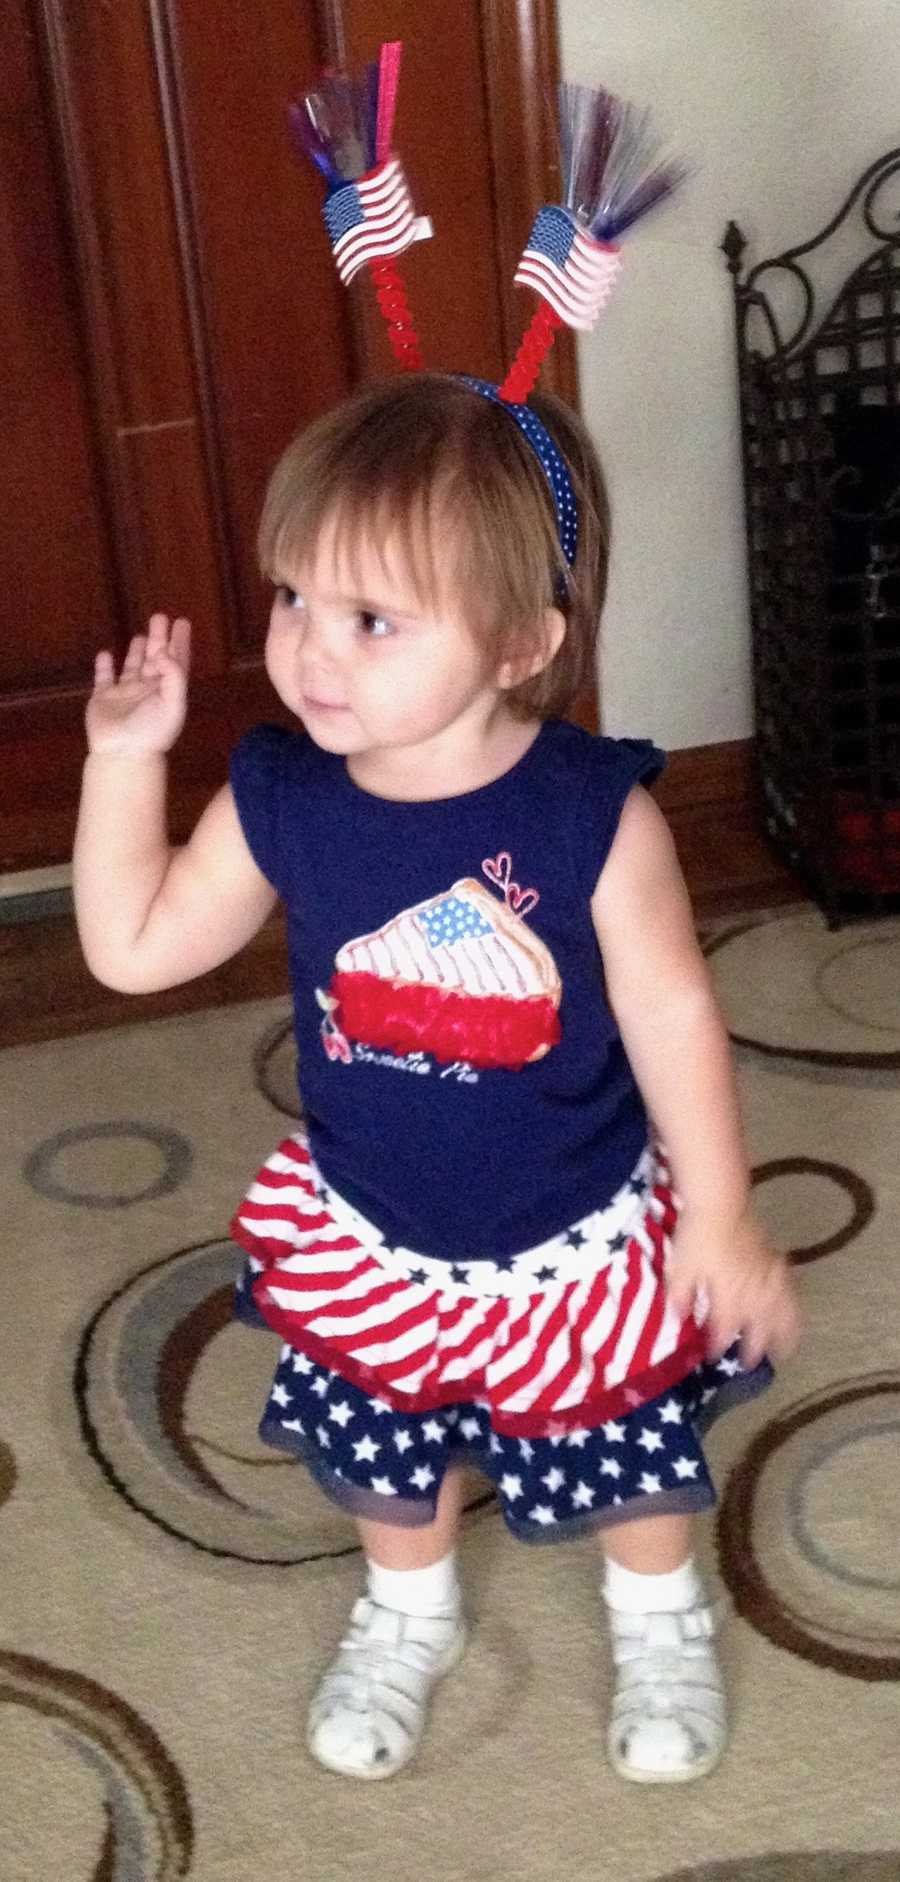 KANSAS CITY, Mo. - Another Cutie Pie enters our pageant with a salute to the American flag.